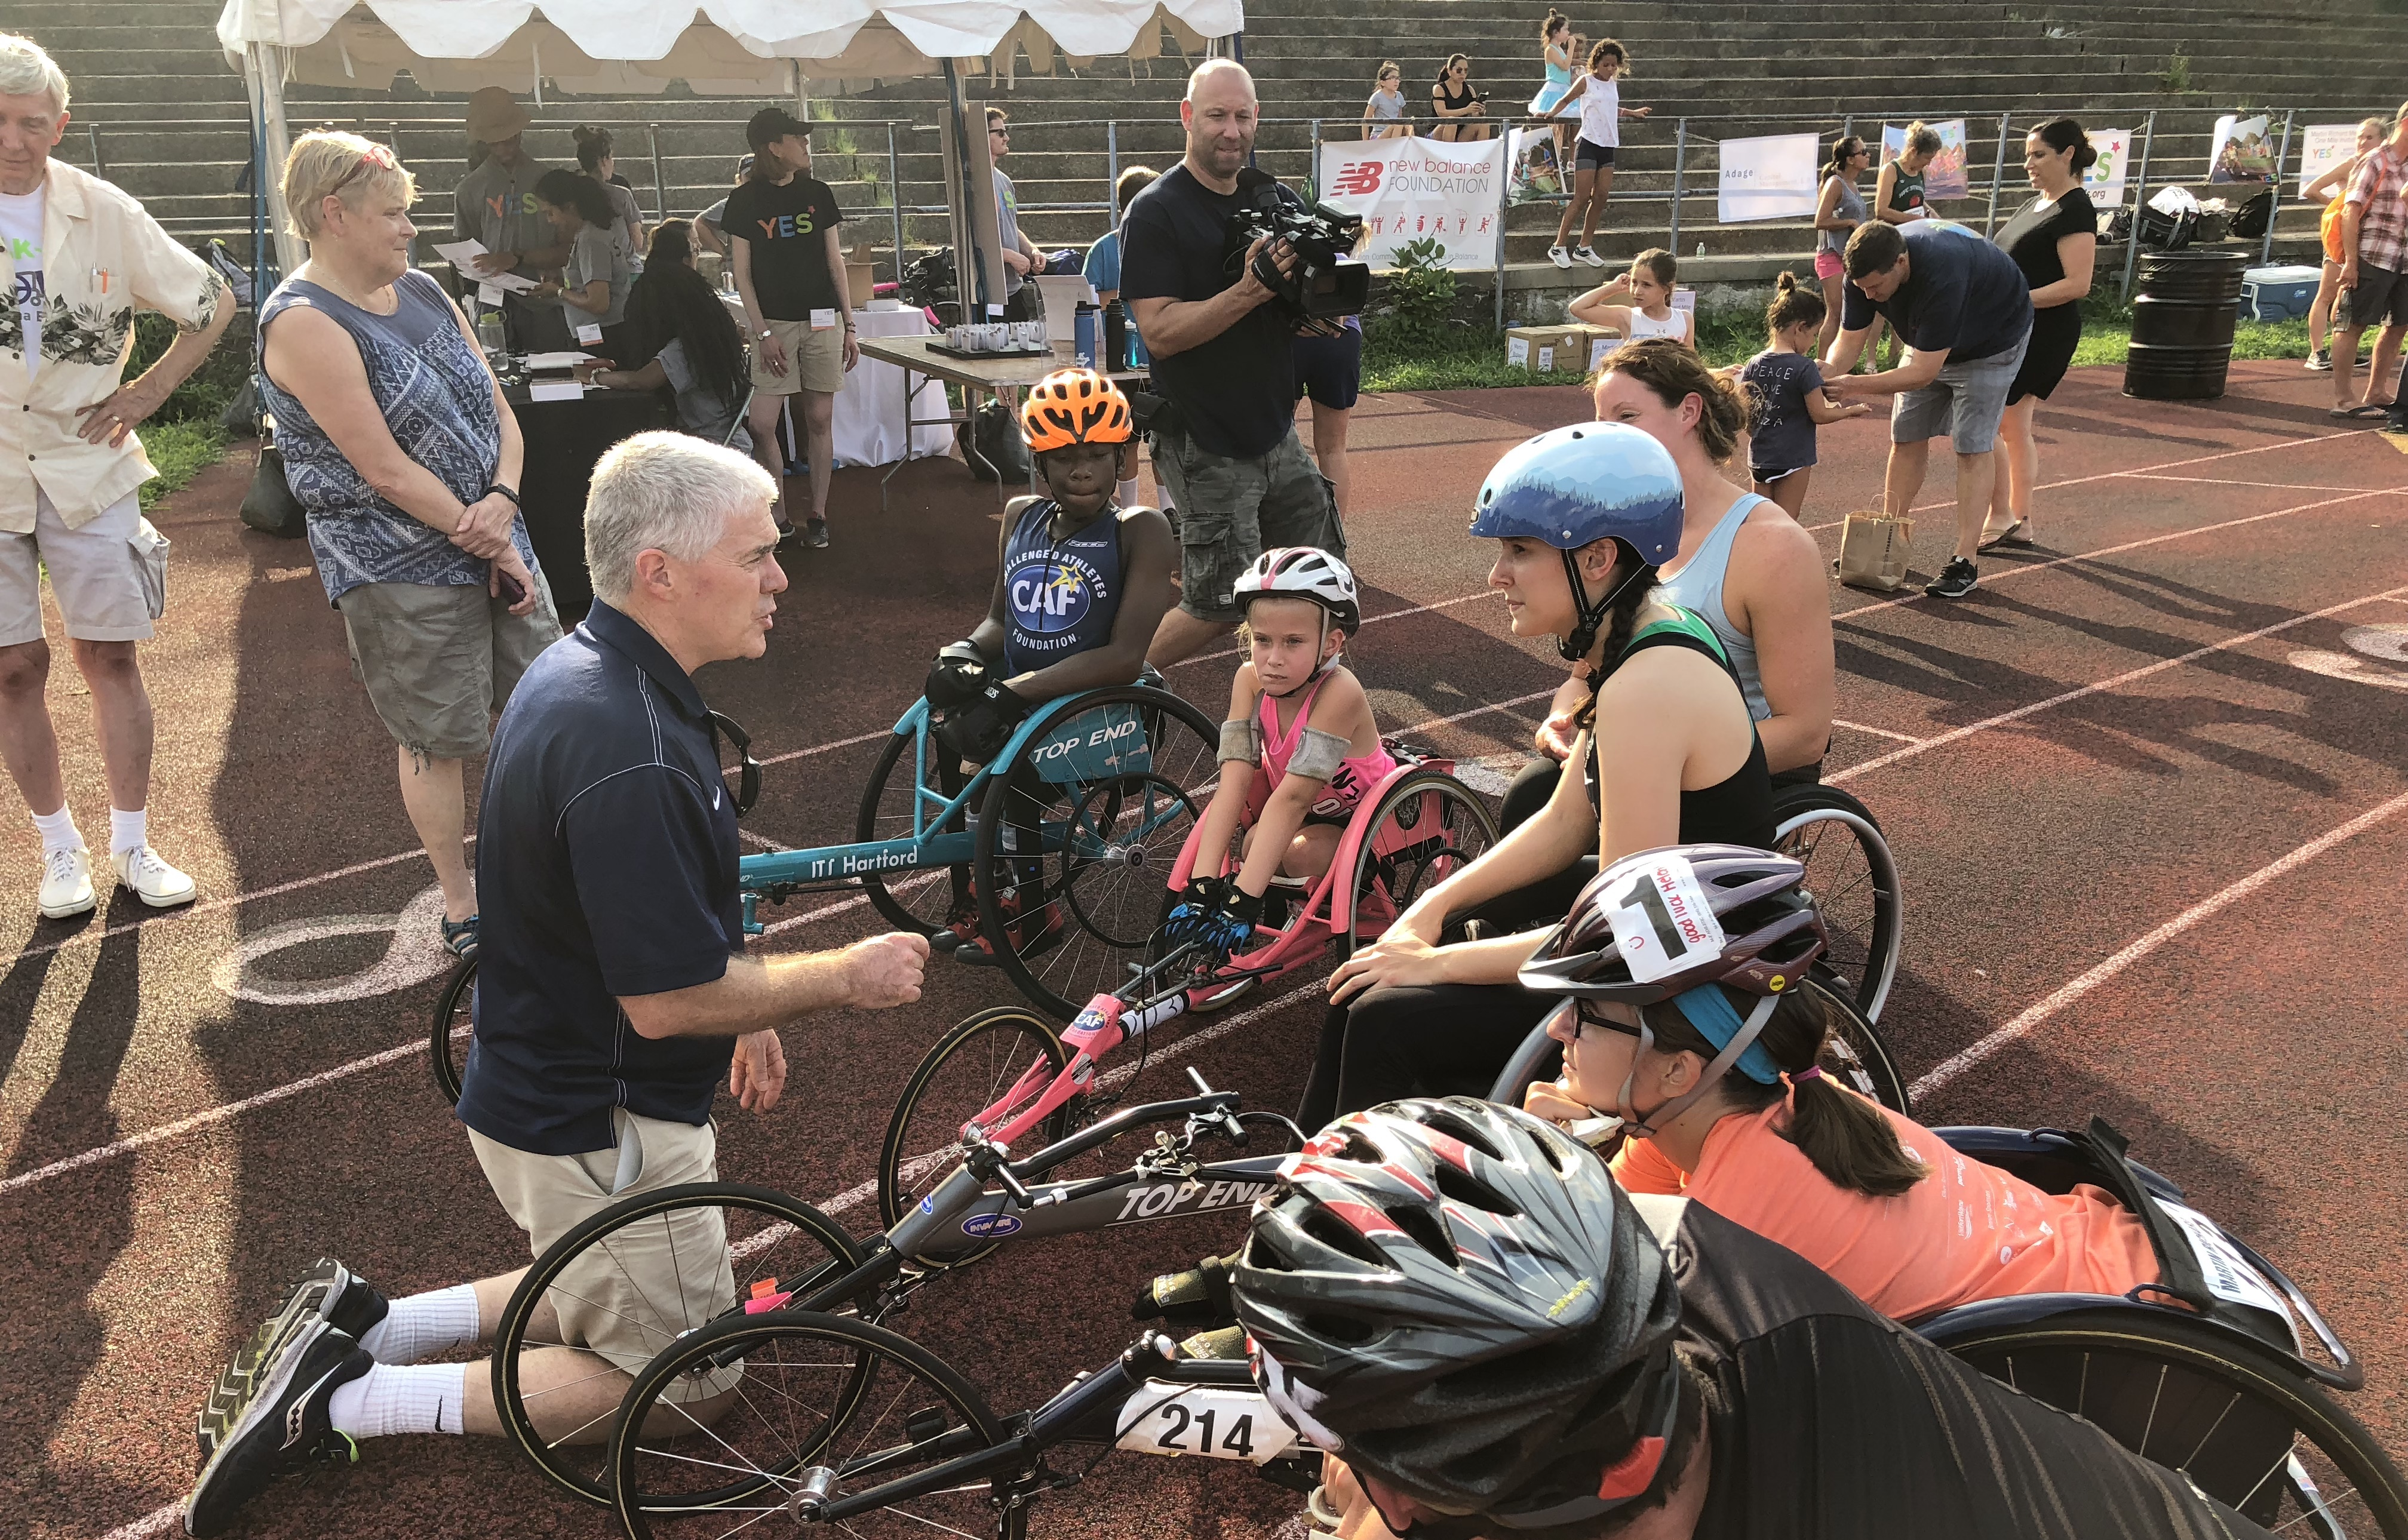 Joe Walsh speaks to young athletes before a race.